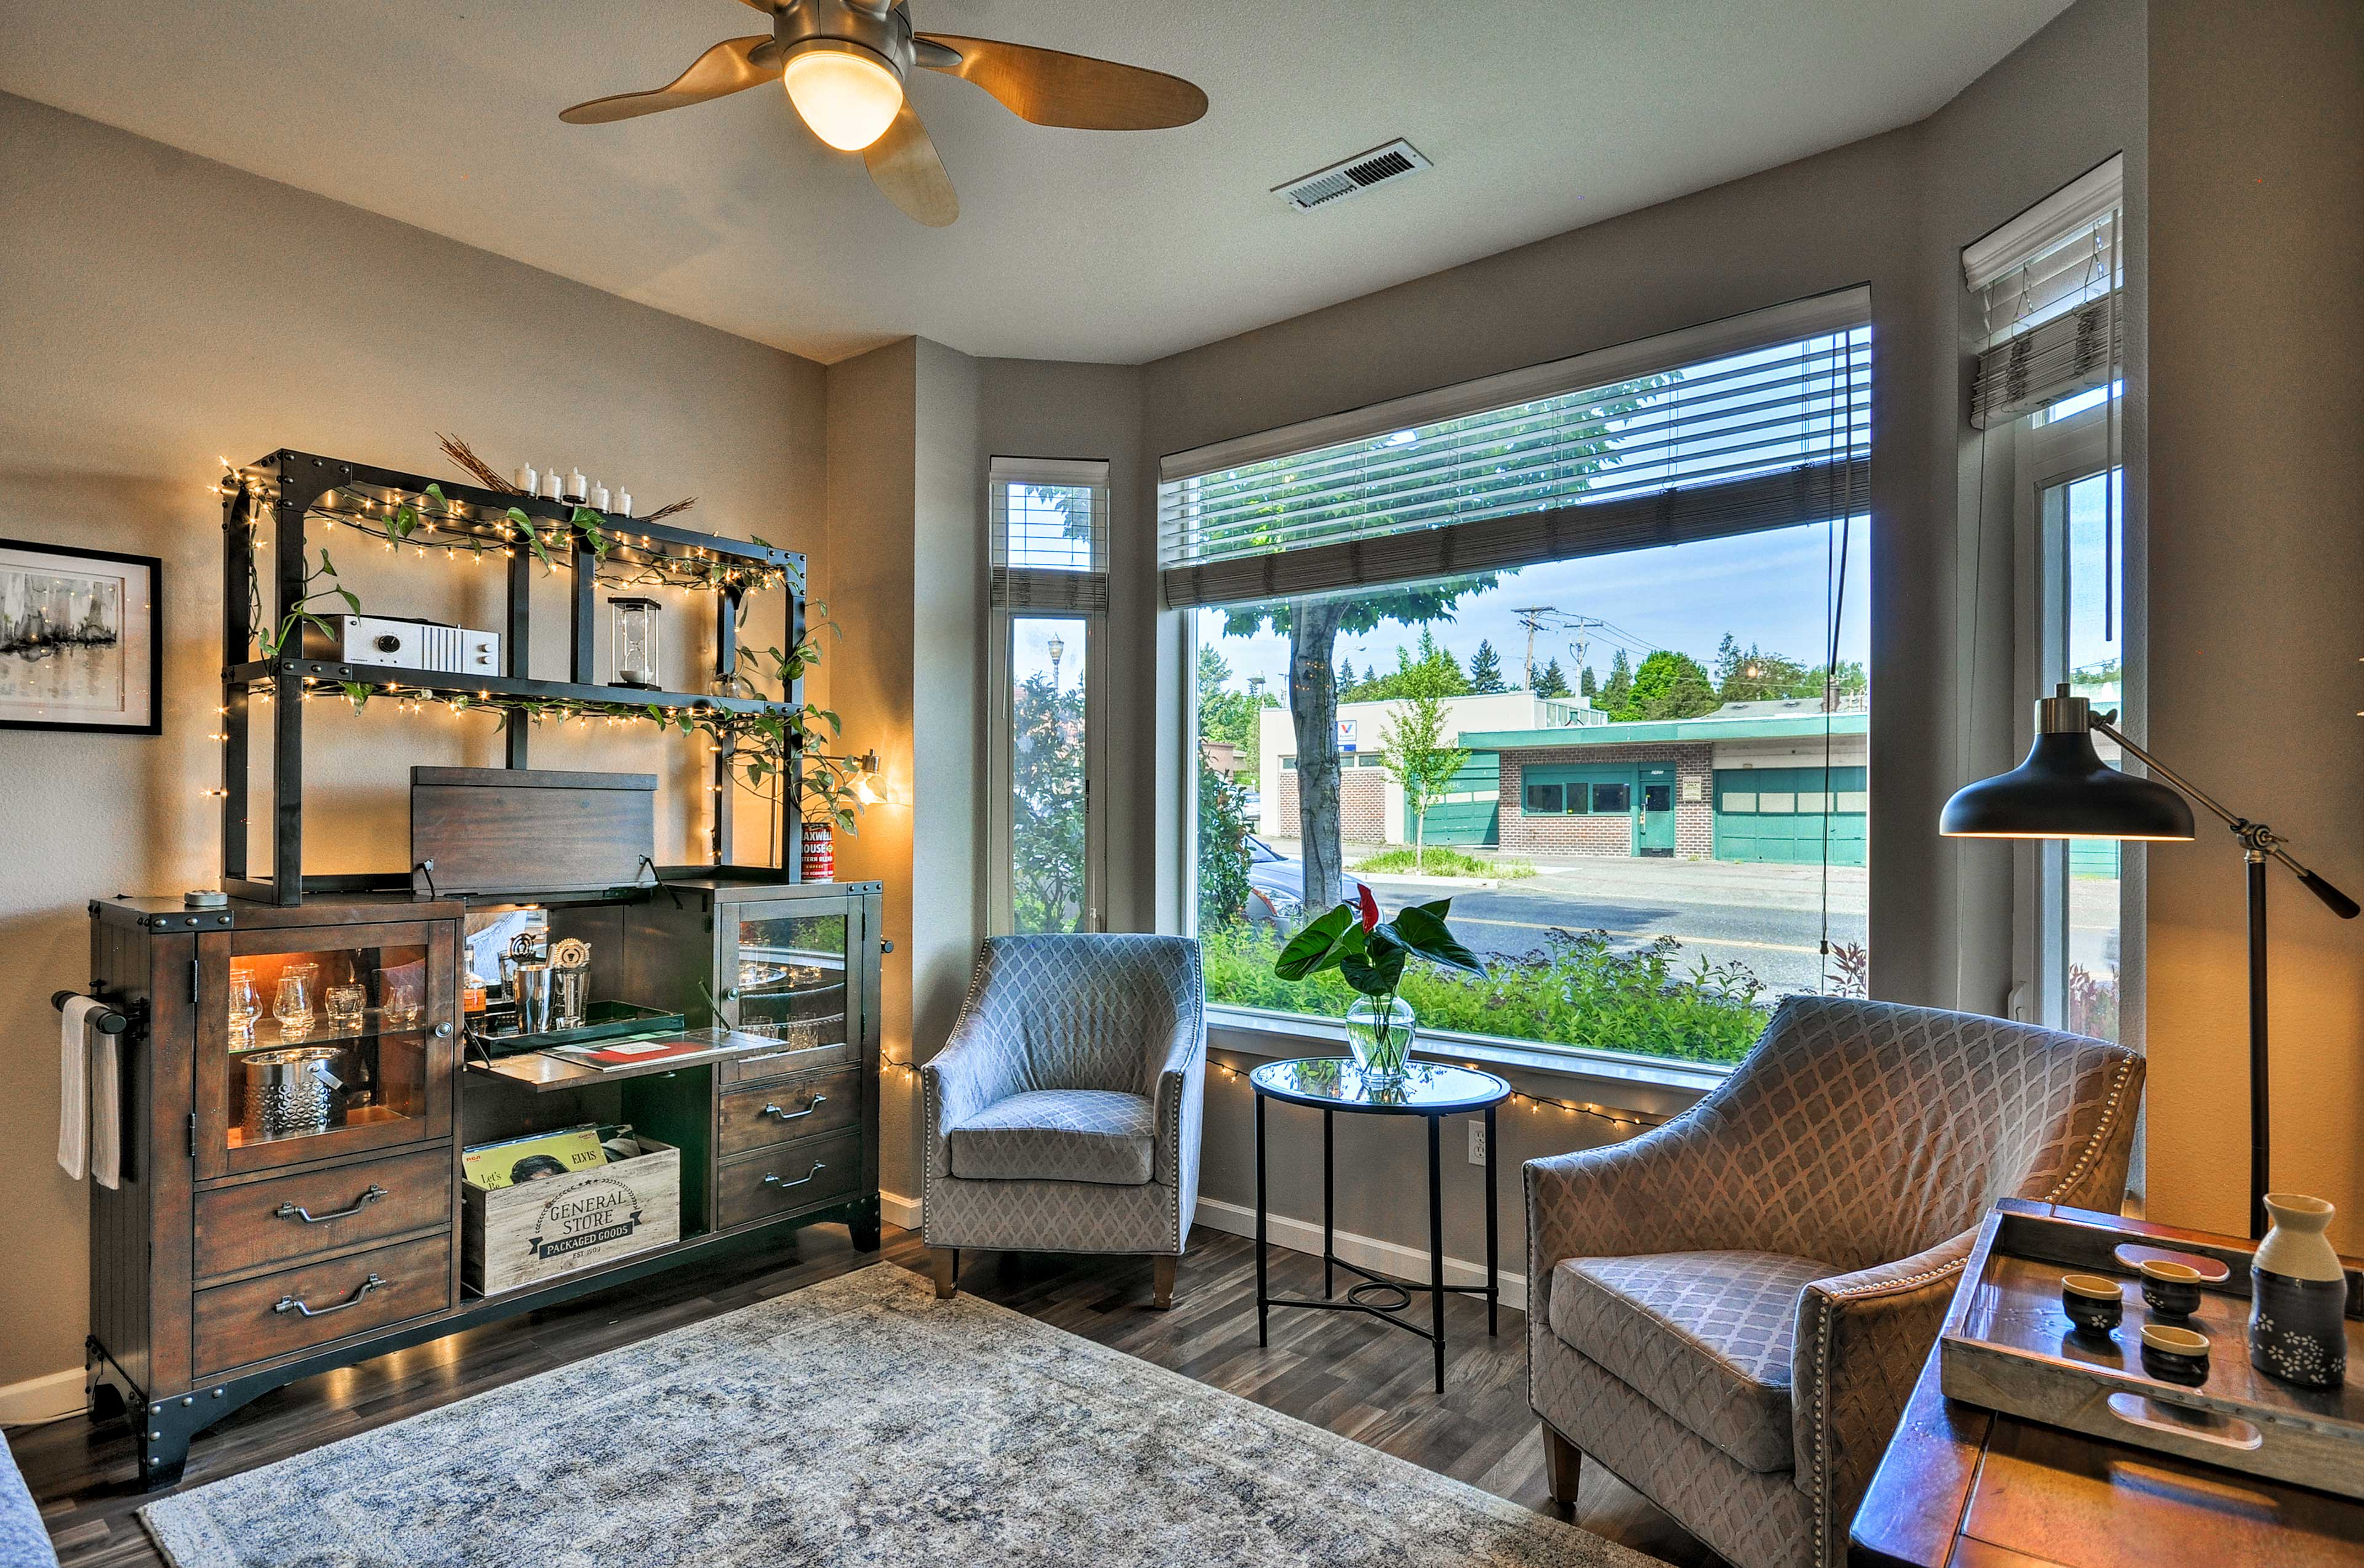 This vacation rental is ideal for small groups and families!